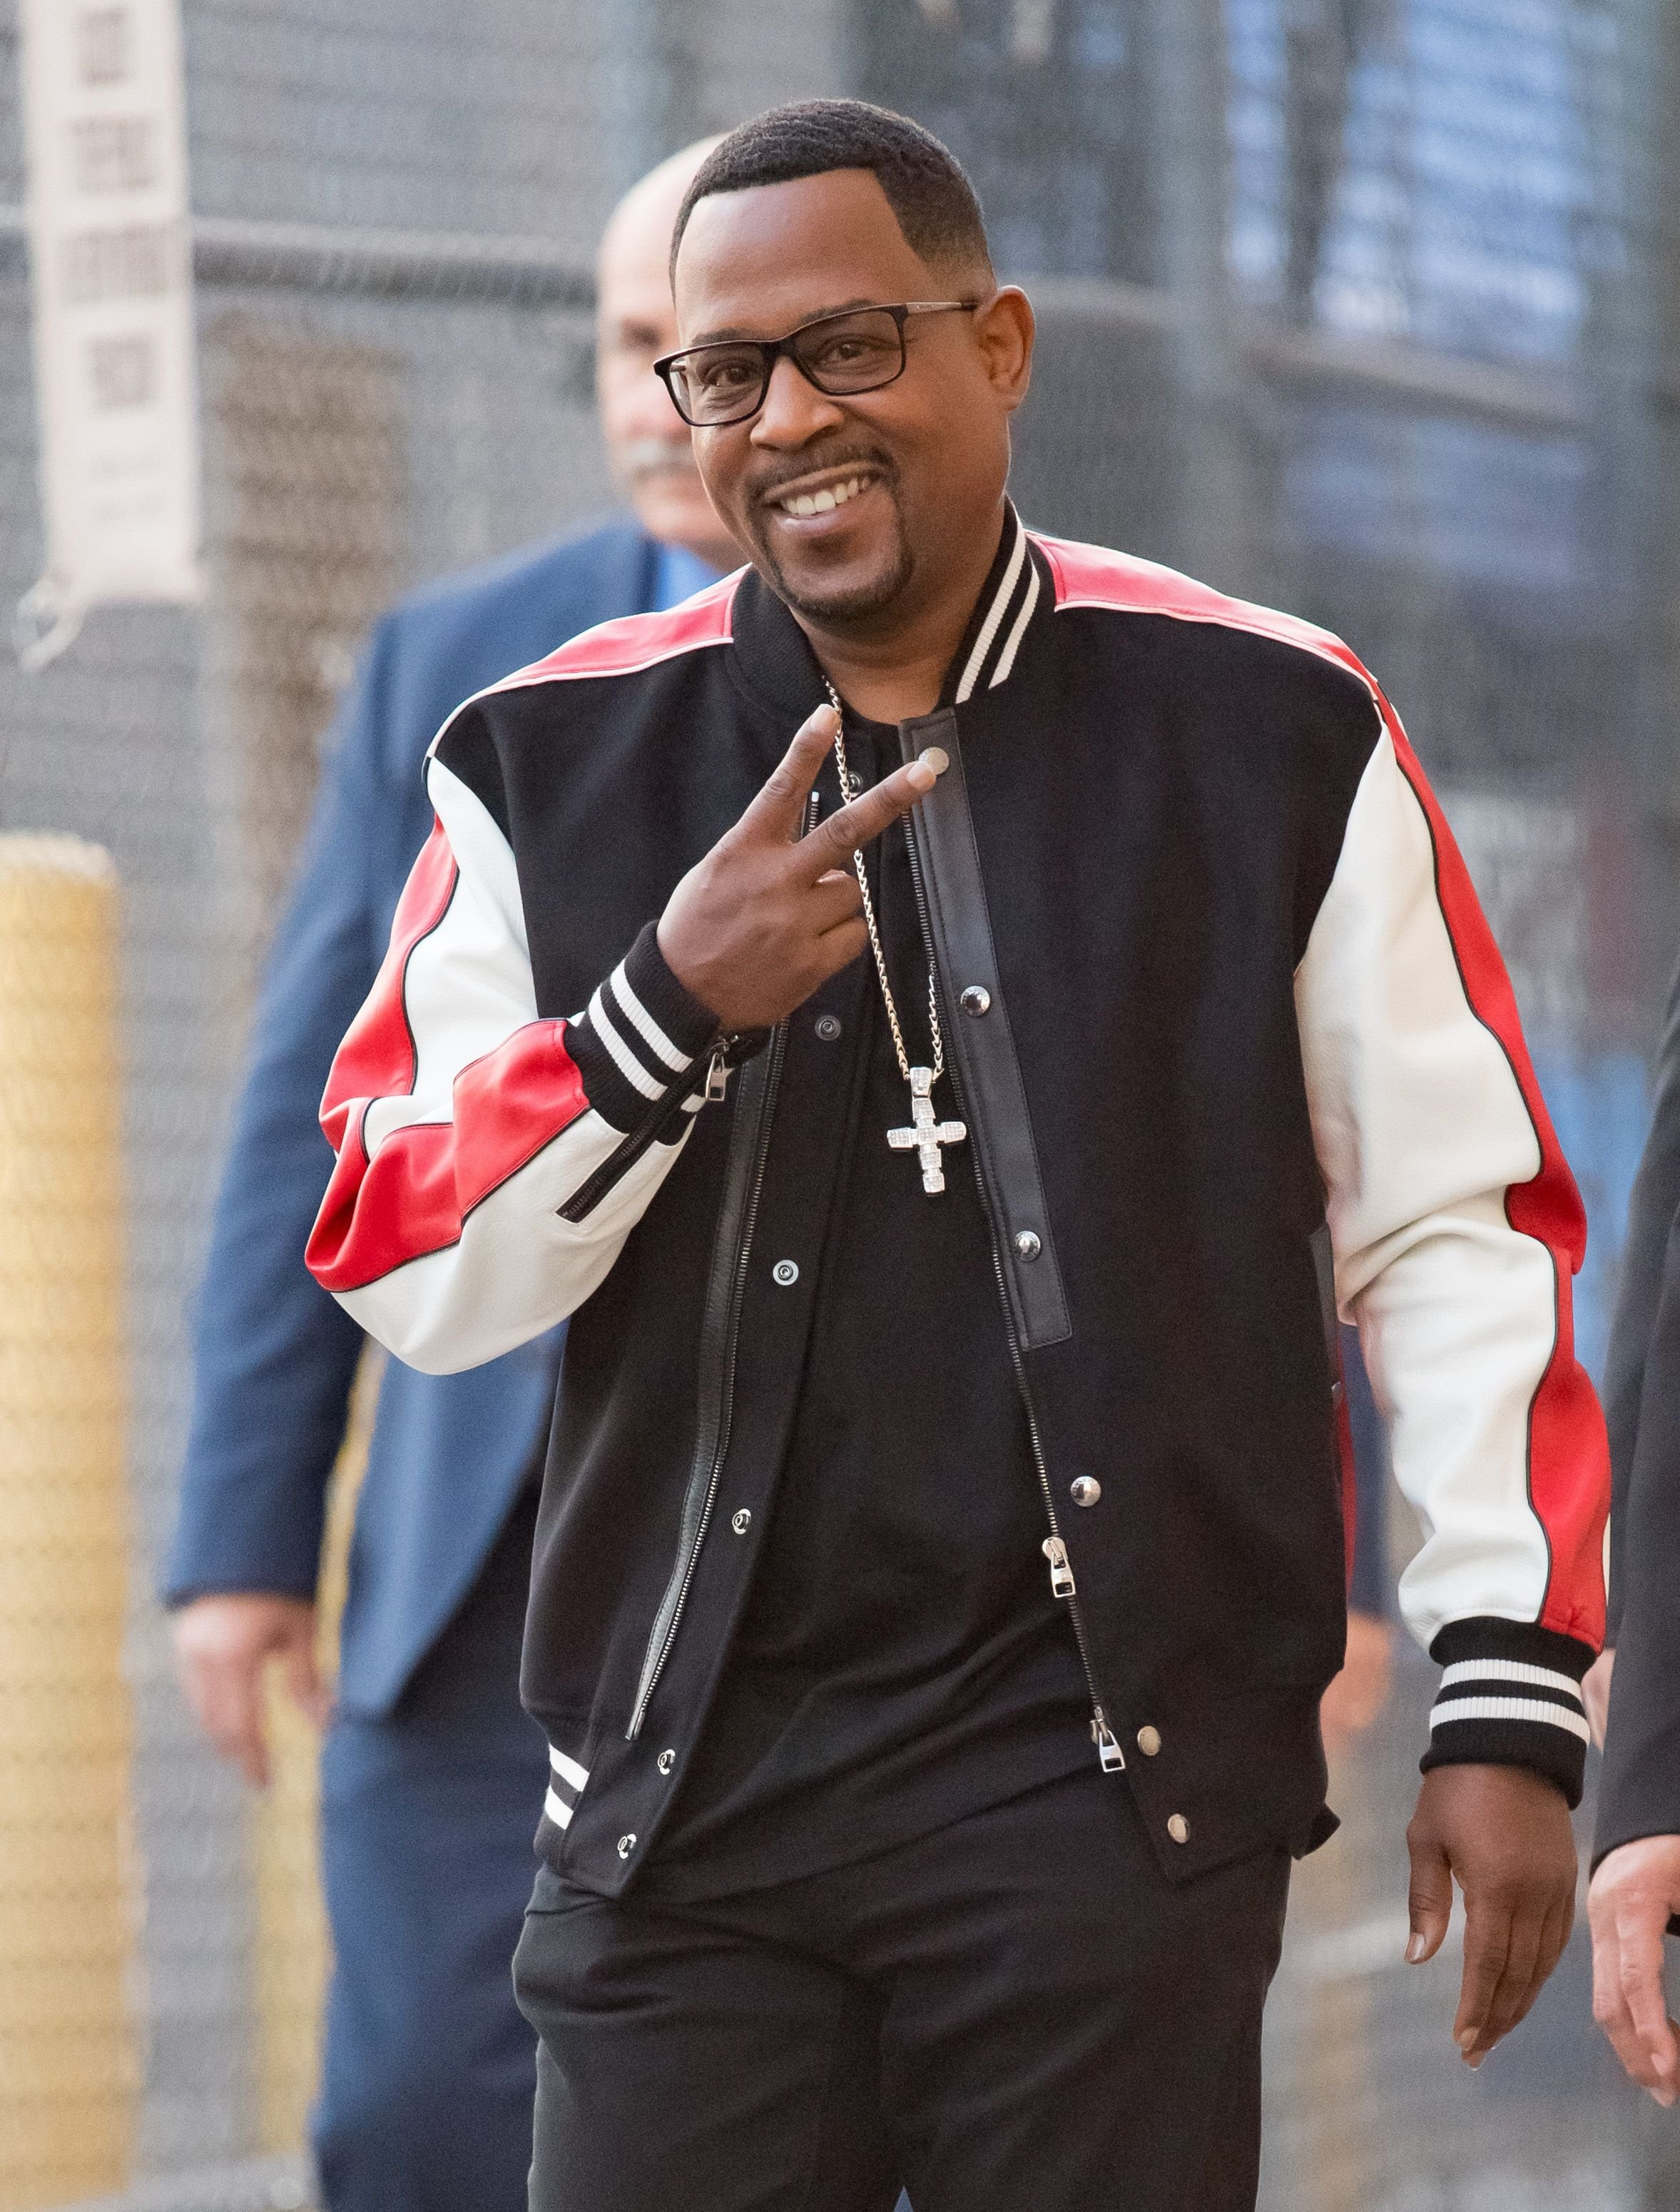 """Martin Lawrence at """"Jimmy Kimmel Live"""" on October 25, 2018 in Los Angeles. 